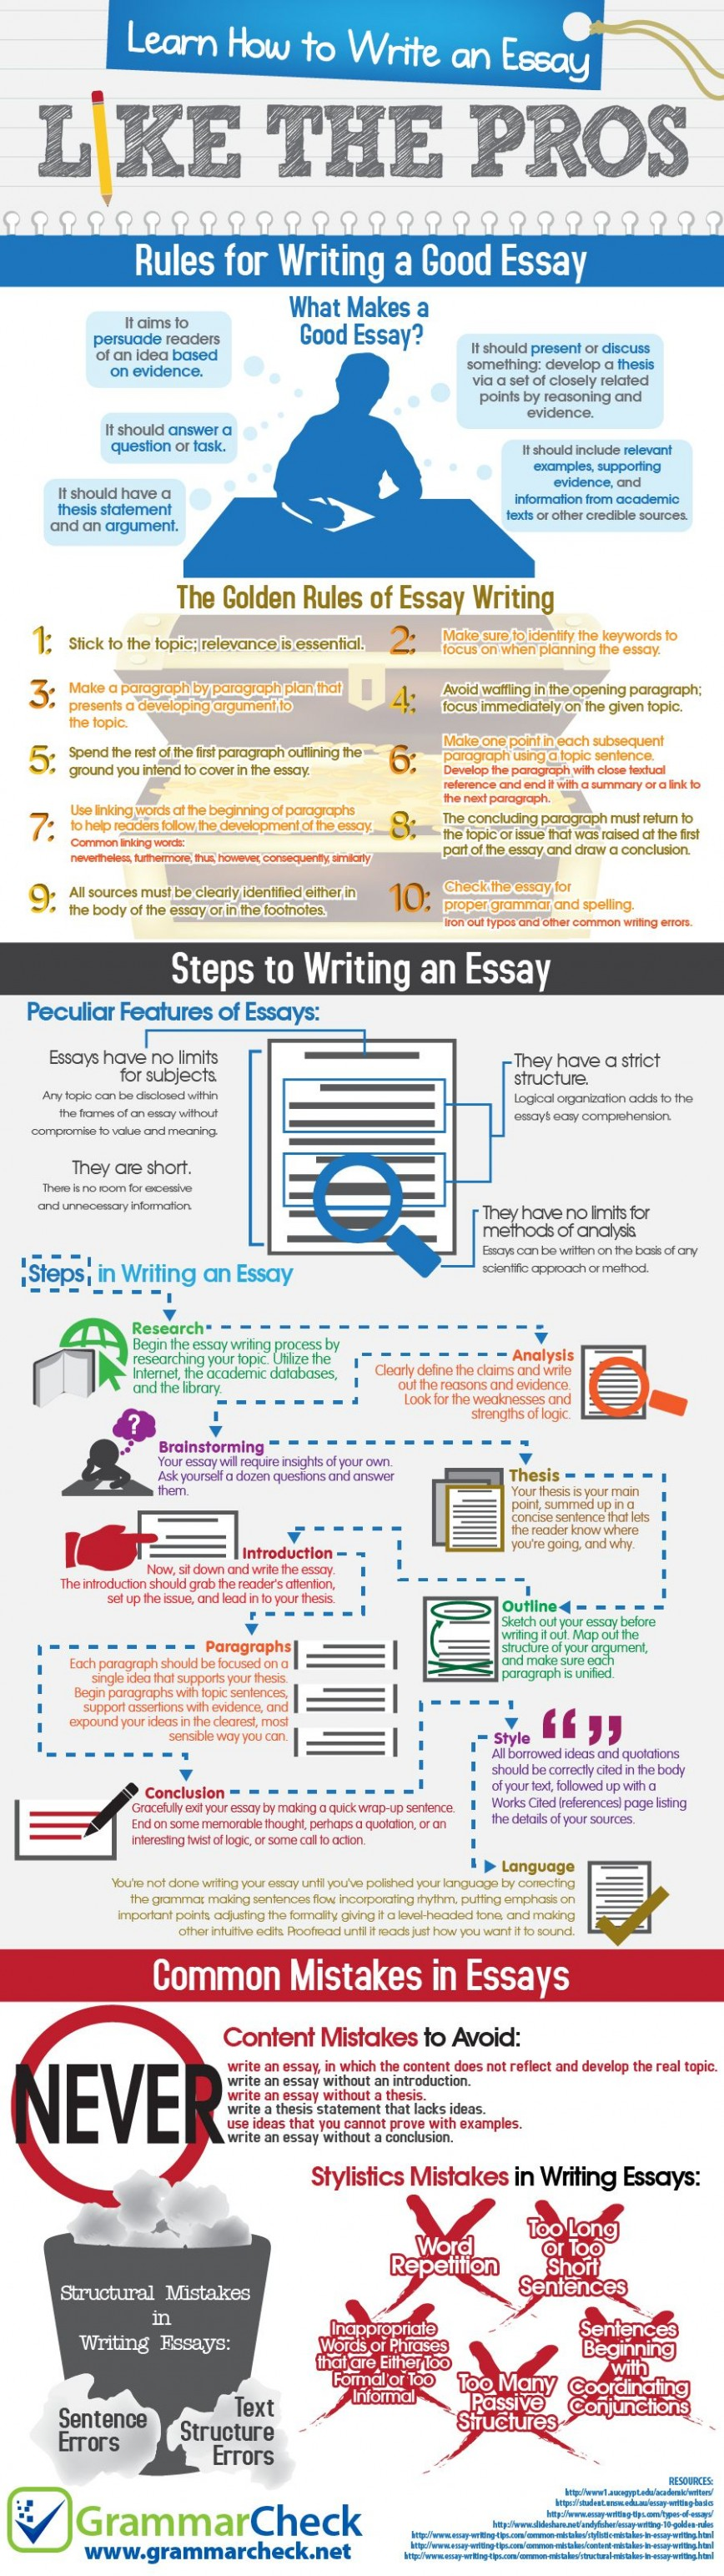 018 Write An Essay For Me Surprising Meaning In Gujarati Free My Online 868